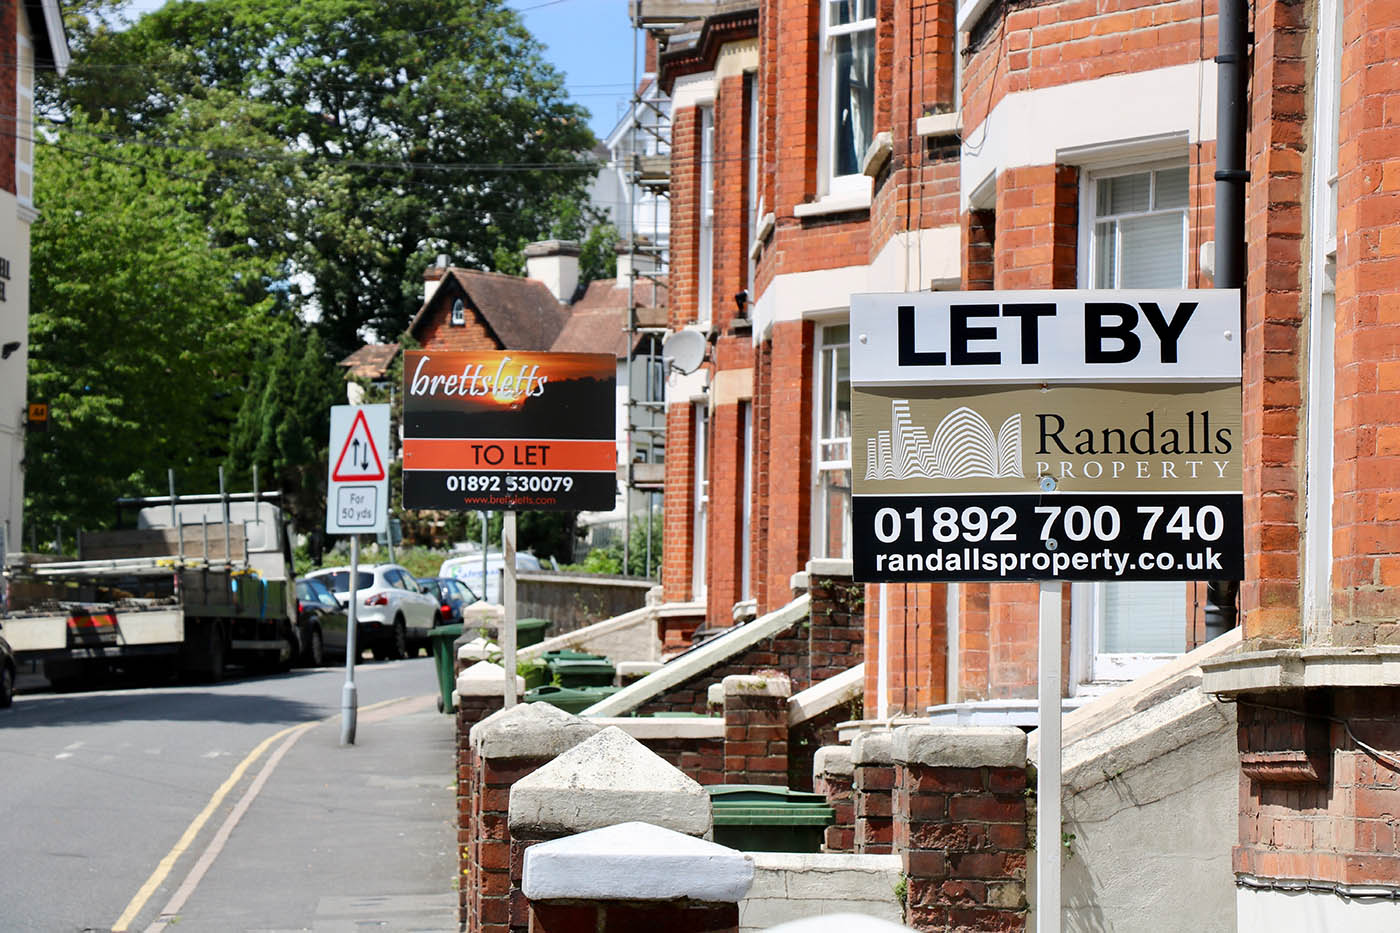 Getting a buy to let mortgage with bad credit - https://roomslocal.co.uk/blog/getting-a-buy-to-let-mortgage-with-bad-credit #mortgage #with #credit